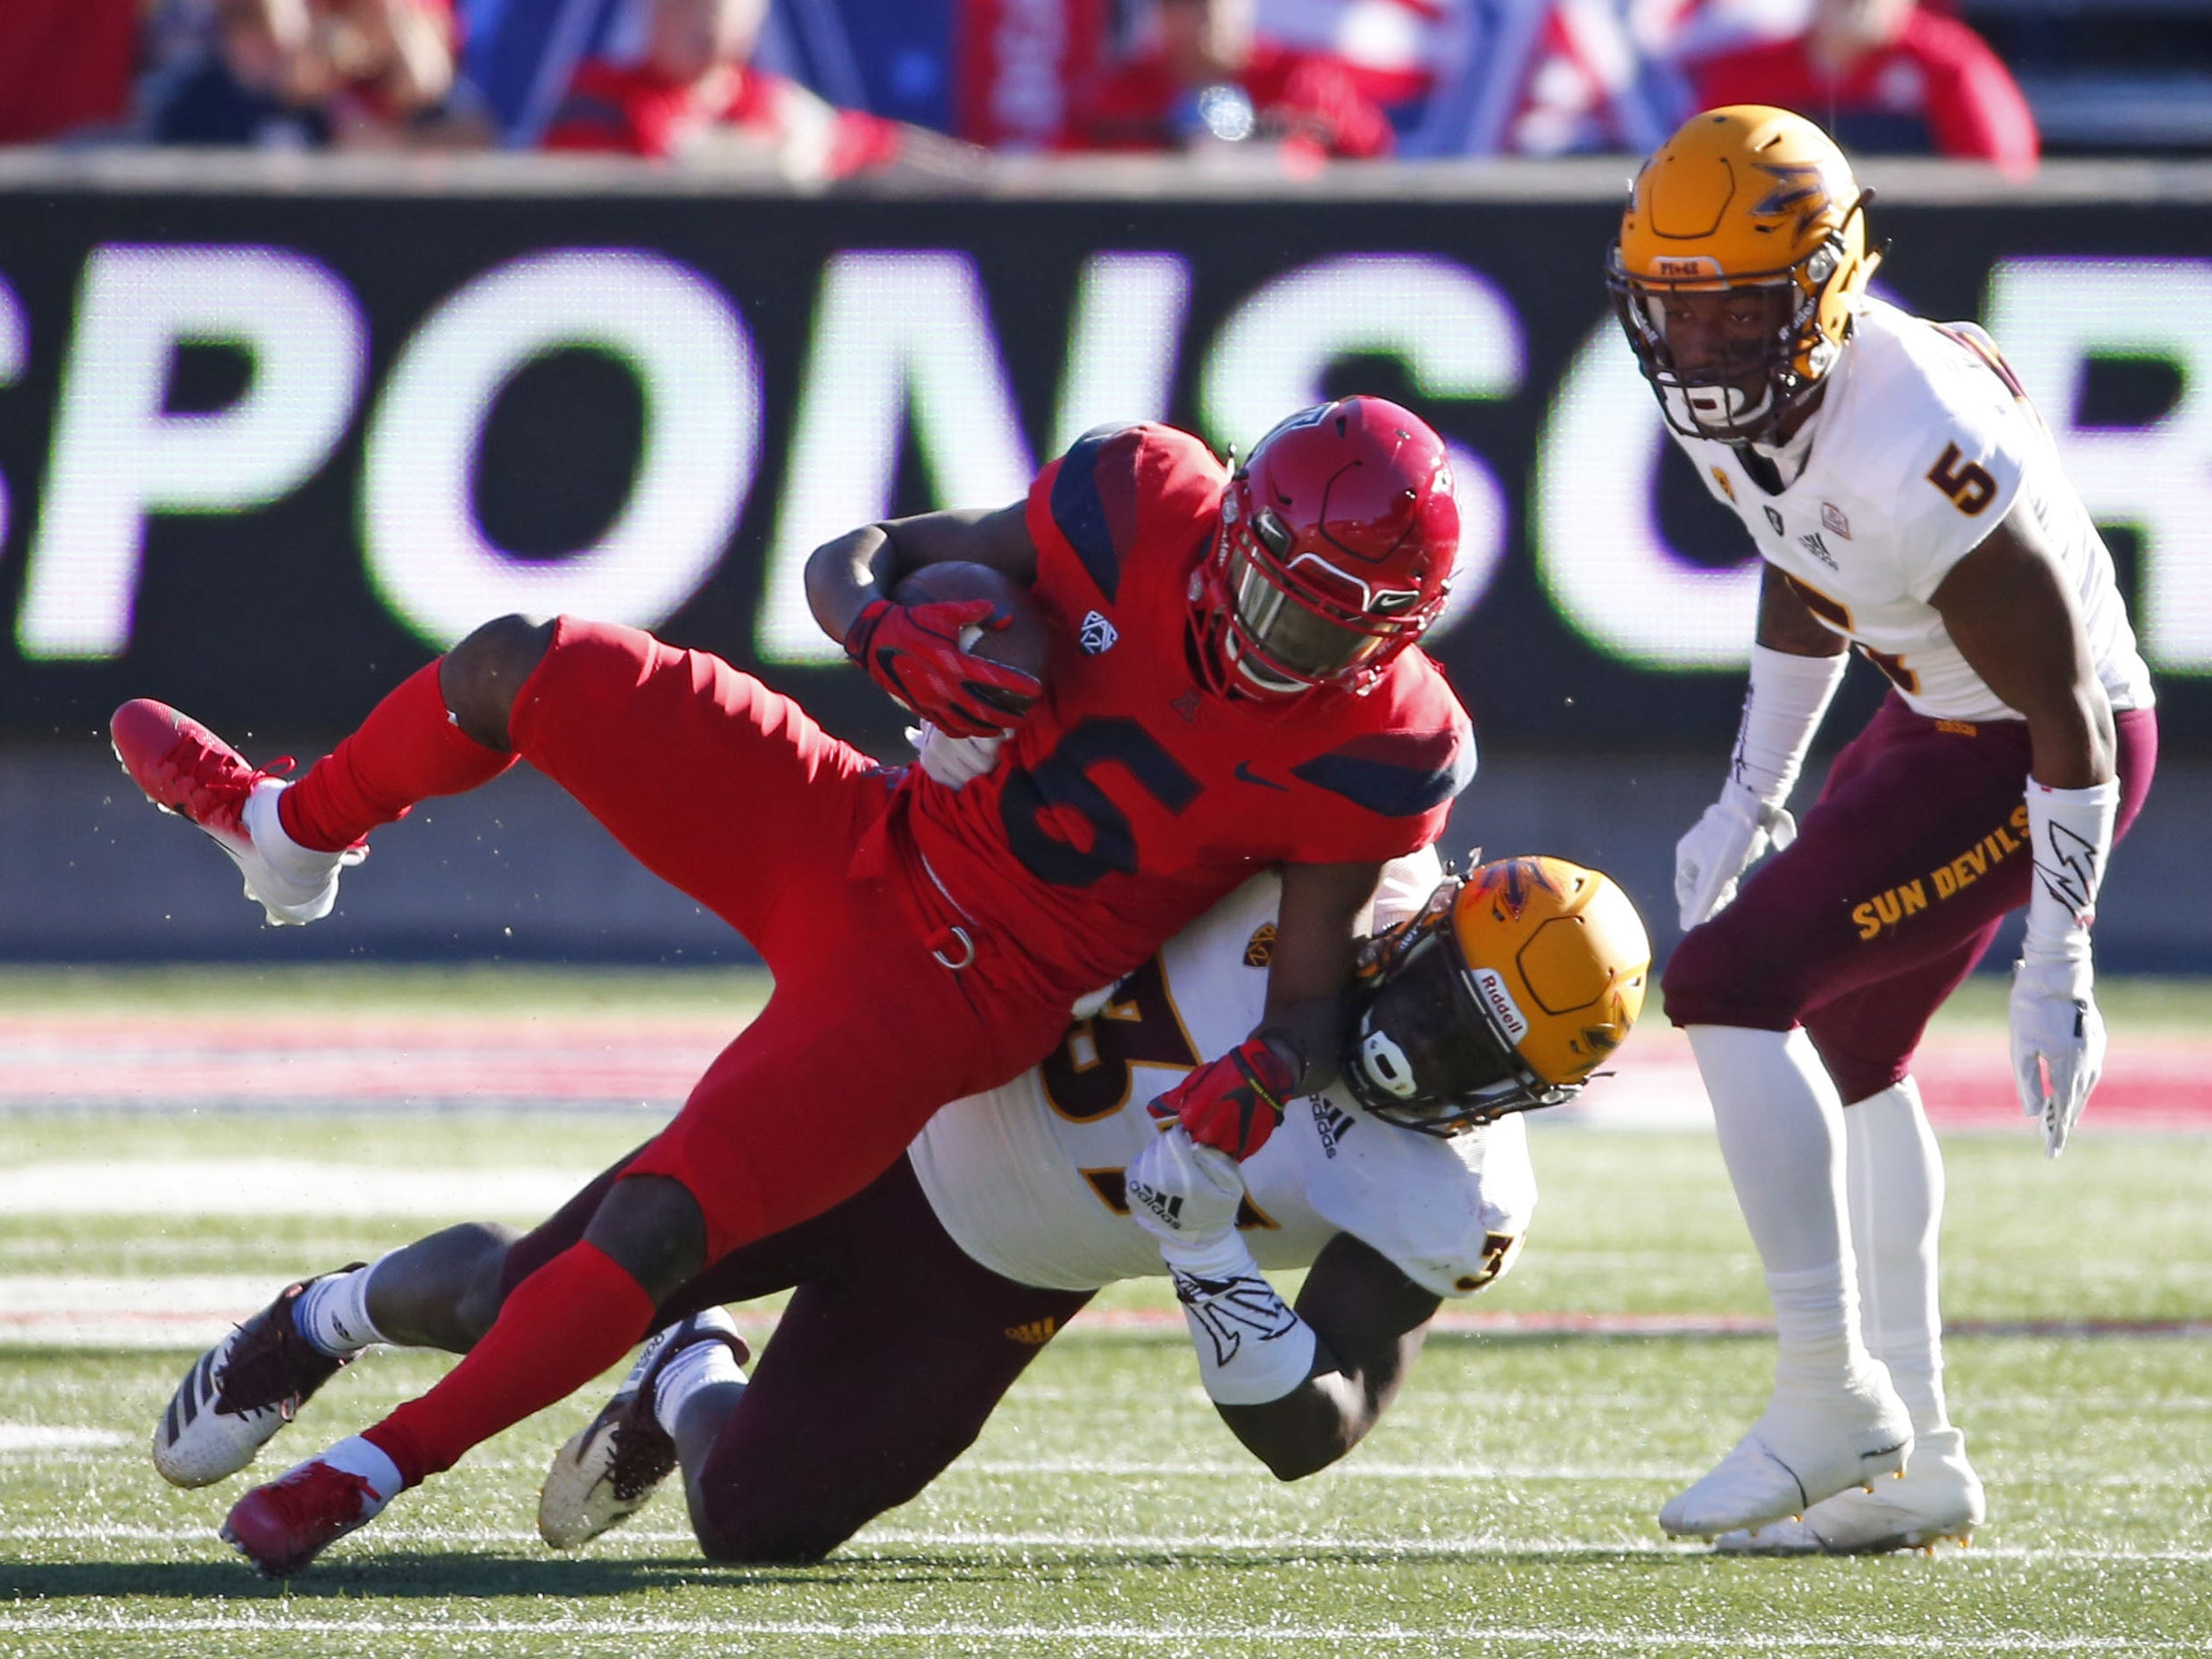 Arizona State Sun Devils linebacker Darien Butler (37) tackles Arizona Wildcats wide receiver Shun Brown (6) during the Territorial Cup football game at Arizona Stadium in Tucson on November 24.